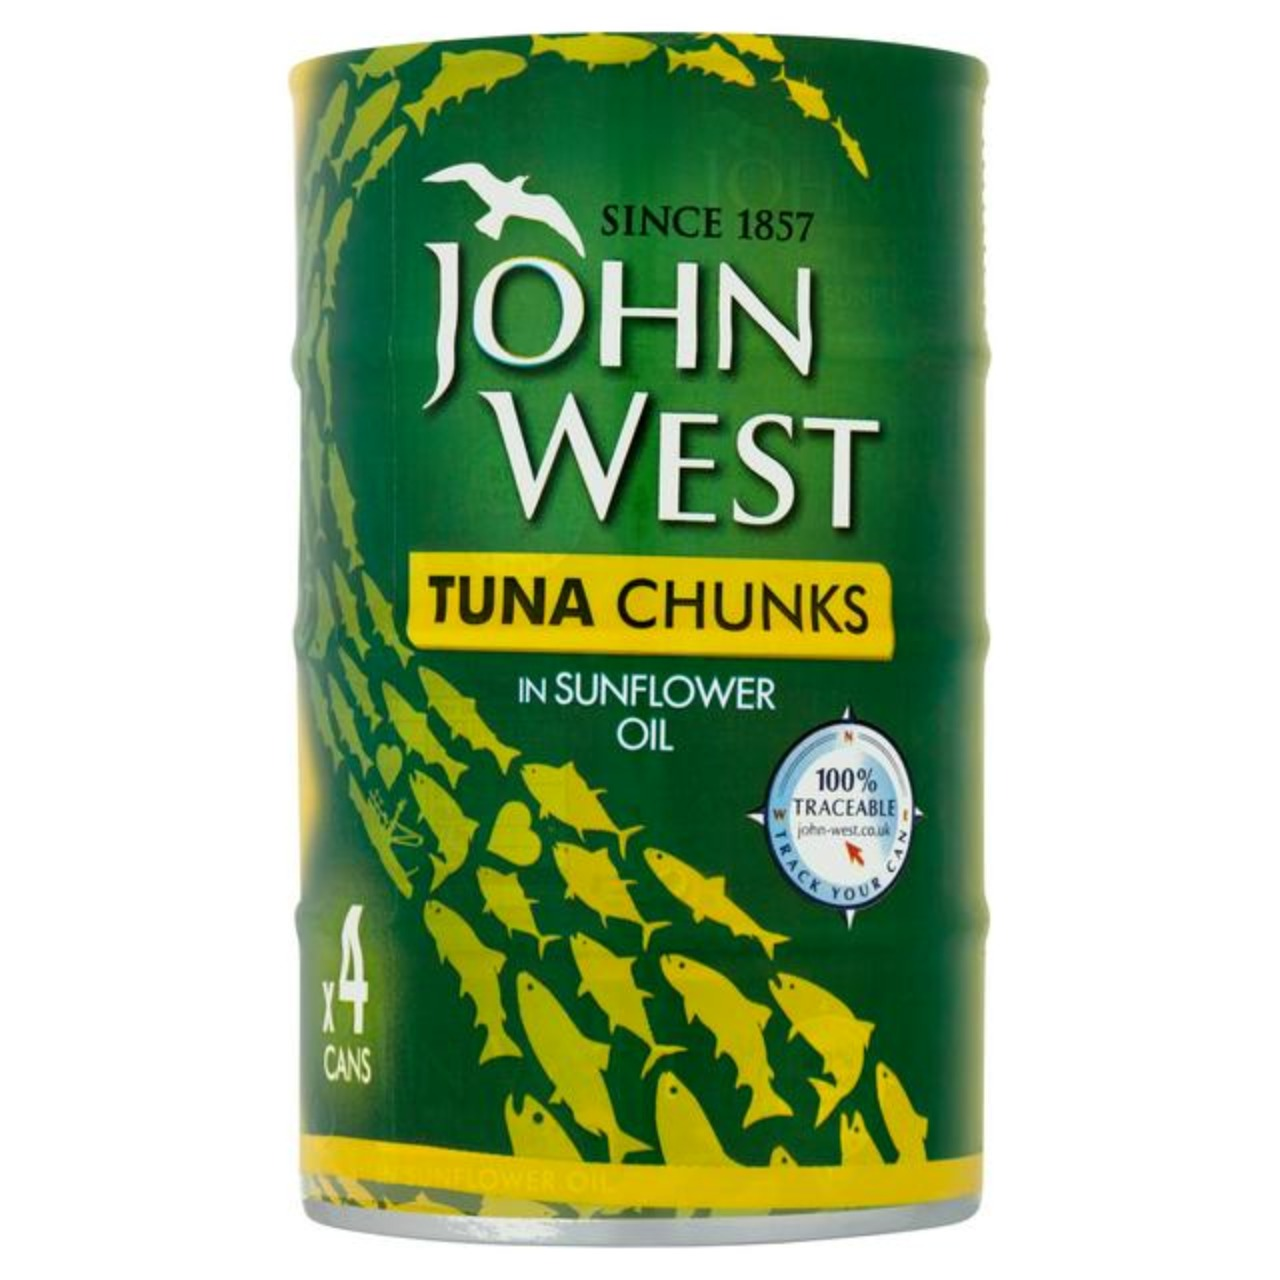 John West Tuna Chunks in Sunflower Oil 4 Pack (4x145g)